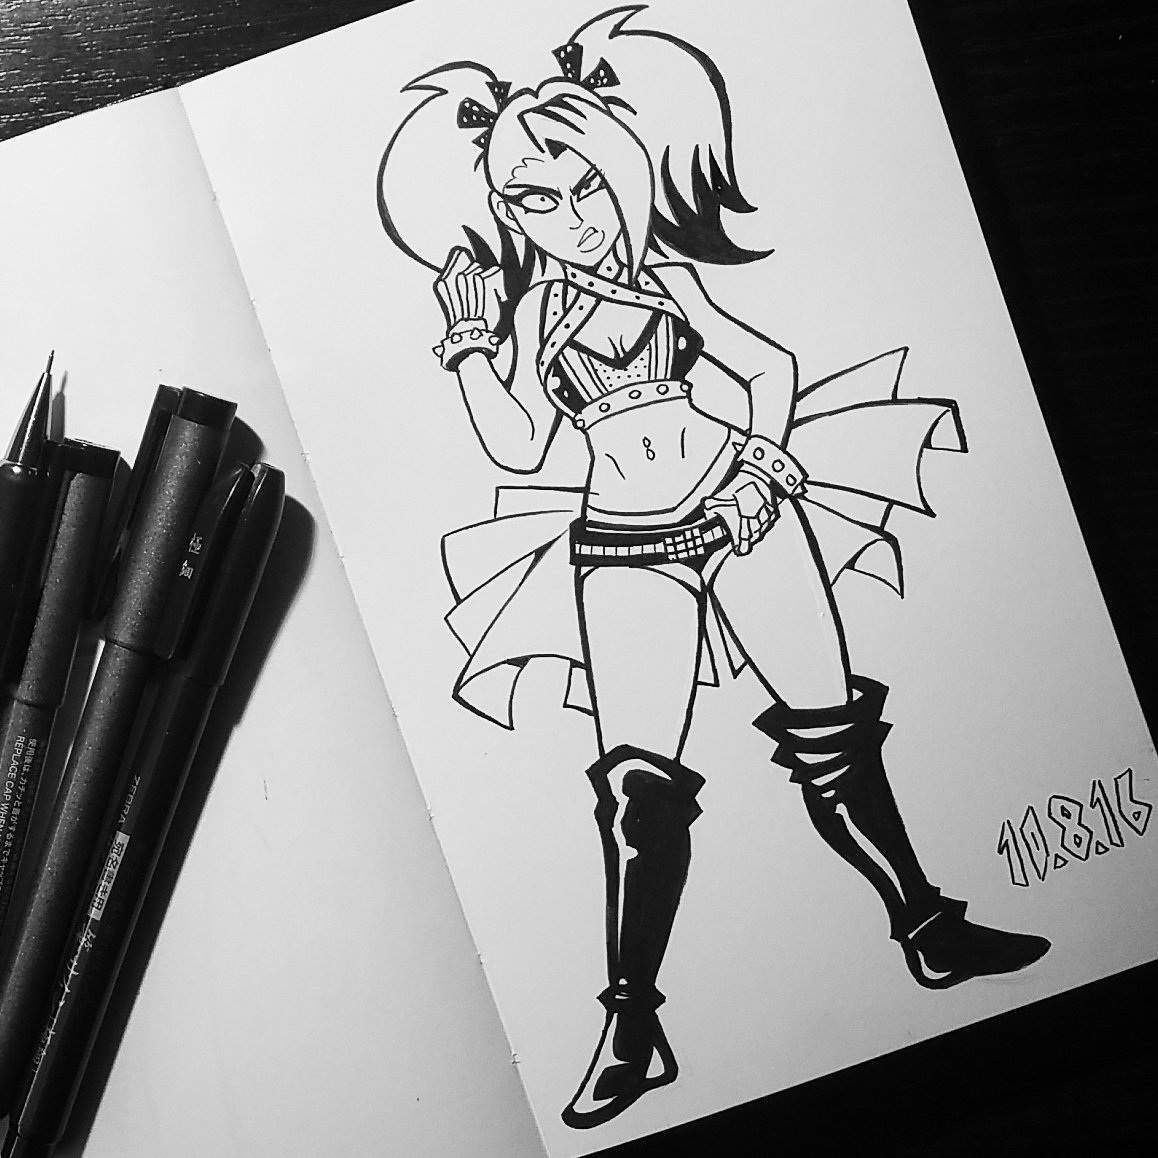 #Inktober Day 08  One of my favorites from the Smackdown brand, @AlexaBliss_WWE! https://t.co/QQ6iFznidC